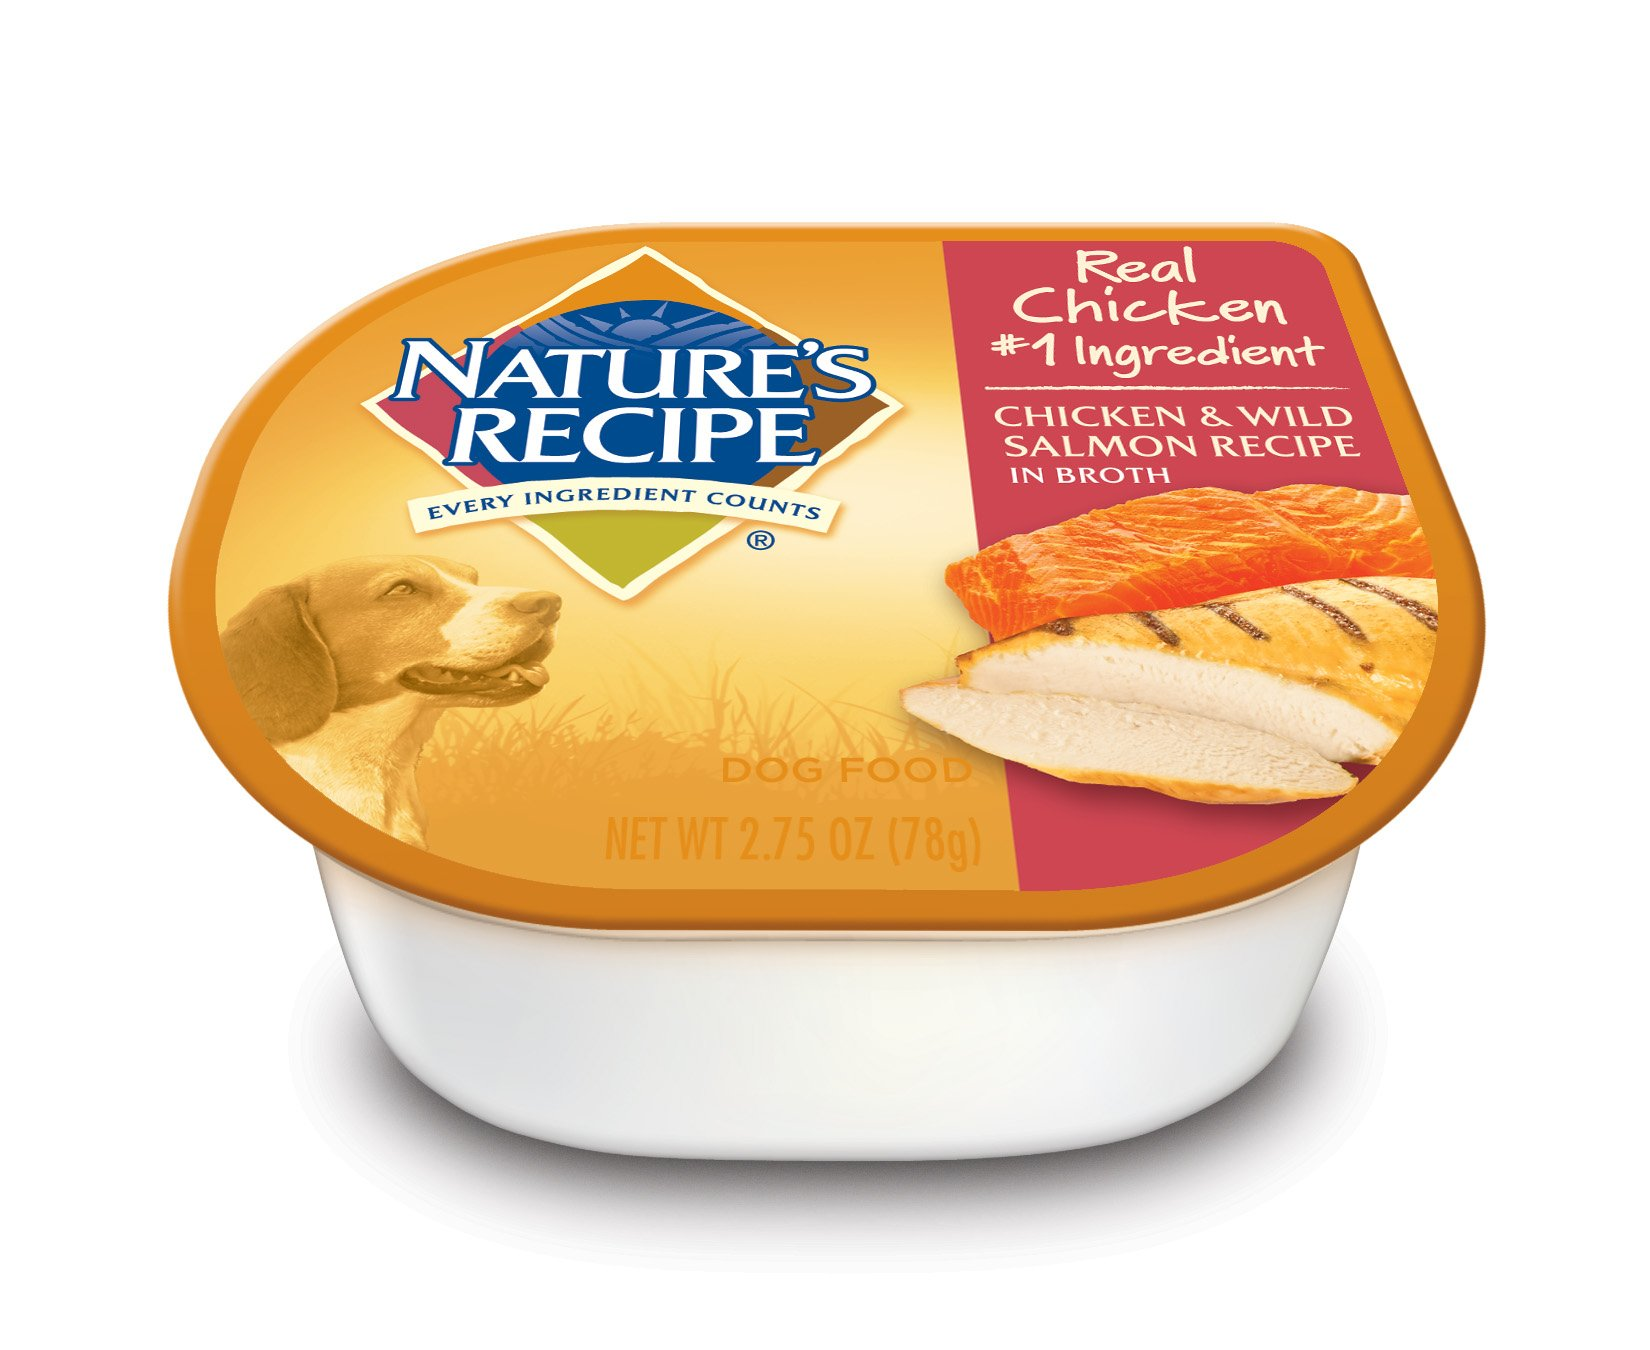 Nature's Recipe Wet Dog Food, Chicken & Wild Salmon Recipe In Broth, 2.75-Ounce Cup (Pack of 24) by Nature's Recipe